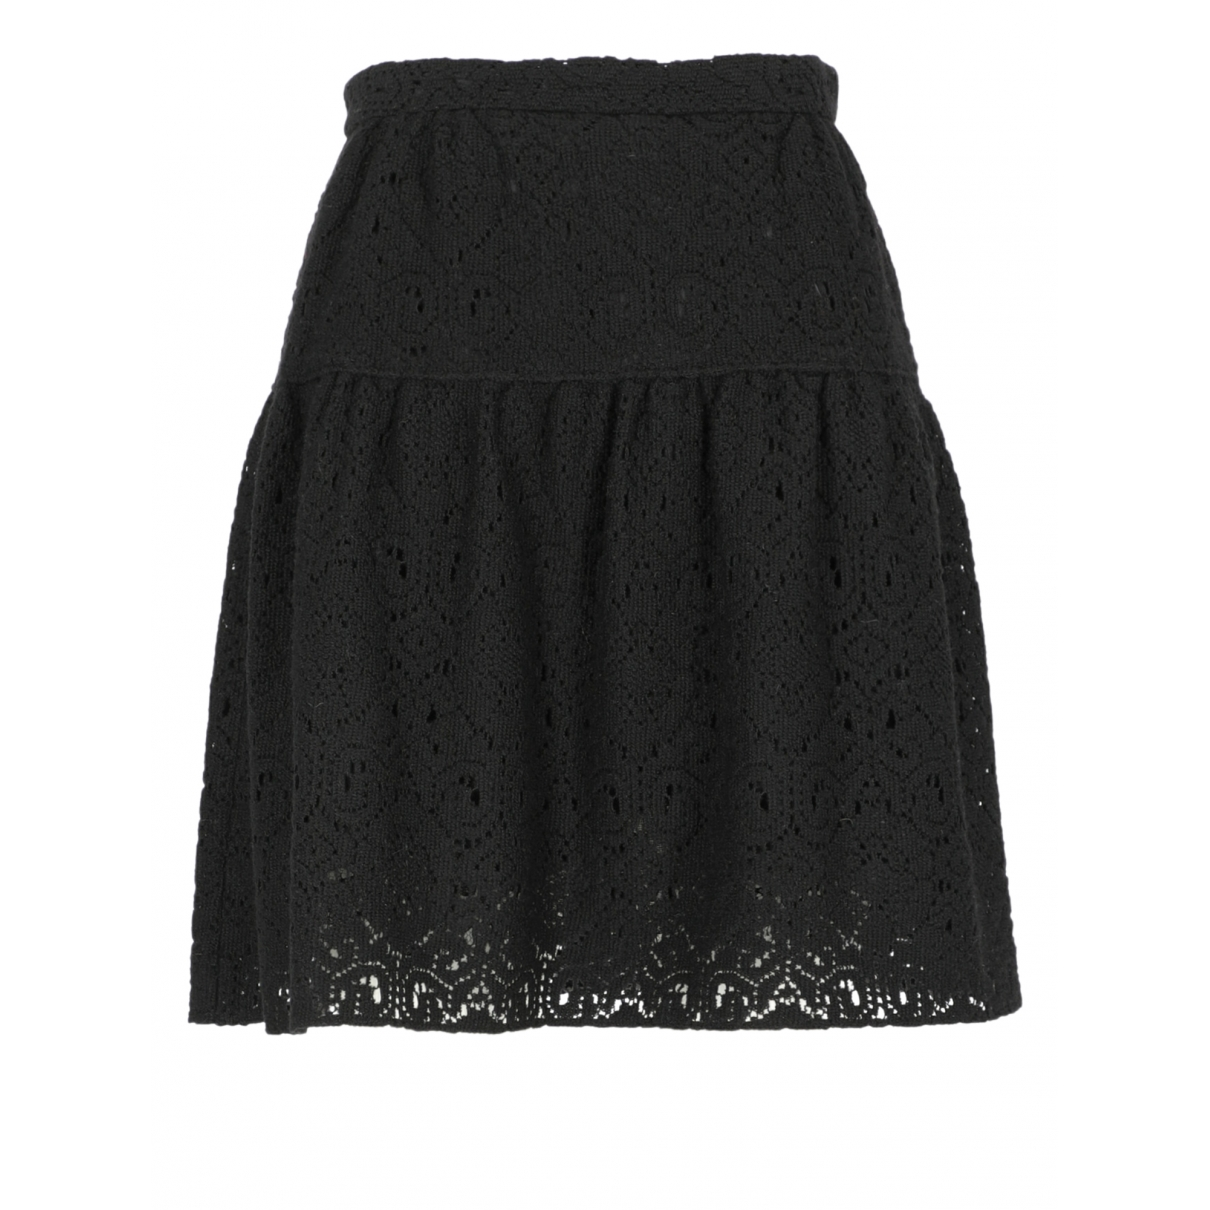 Dolce & Gabbana \N Black Wool skirt for Women 40 IT